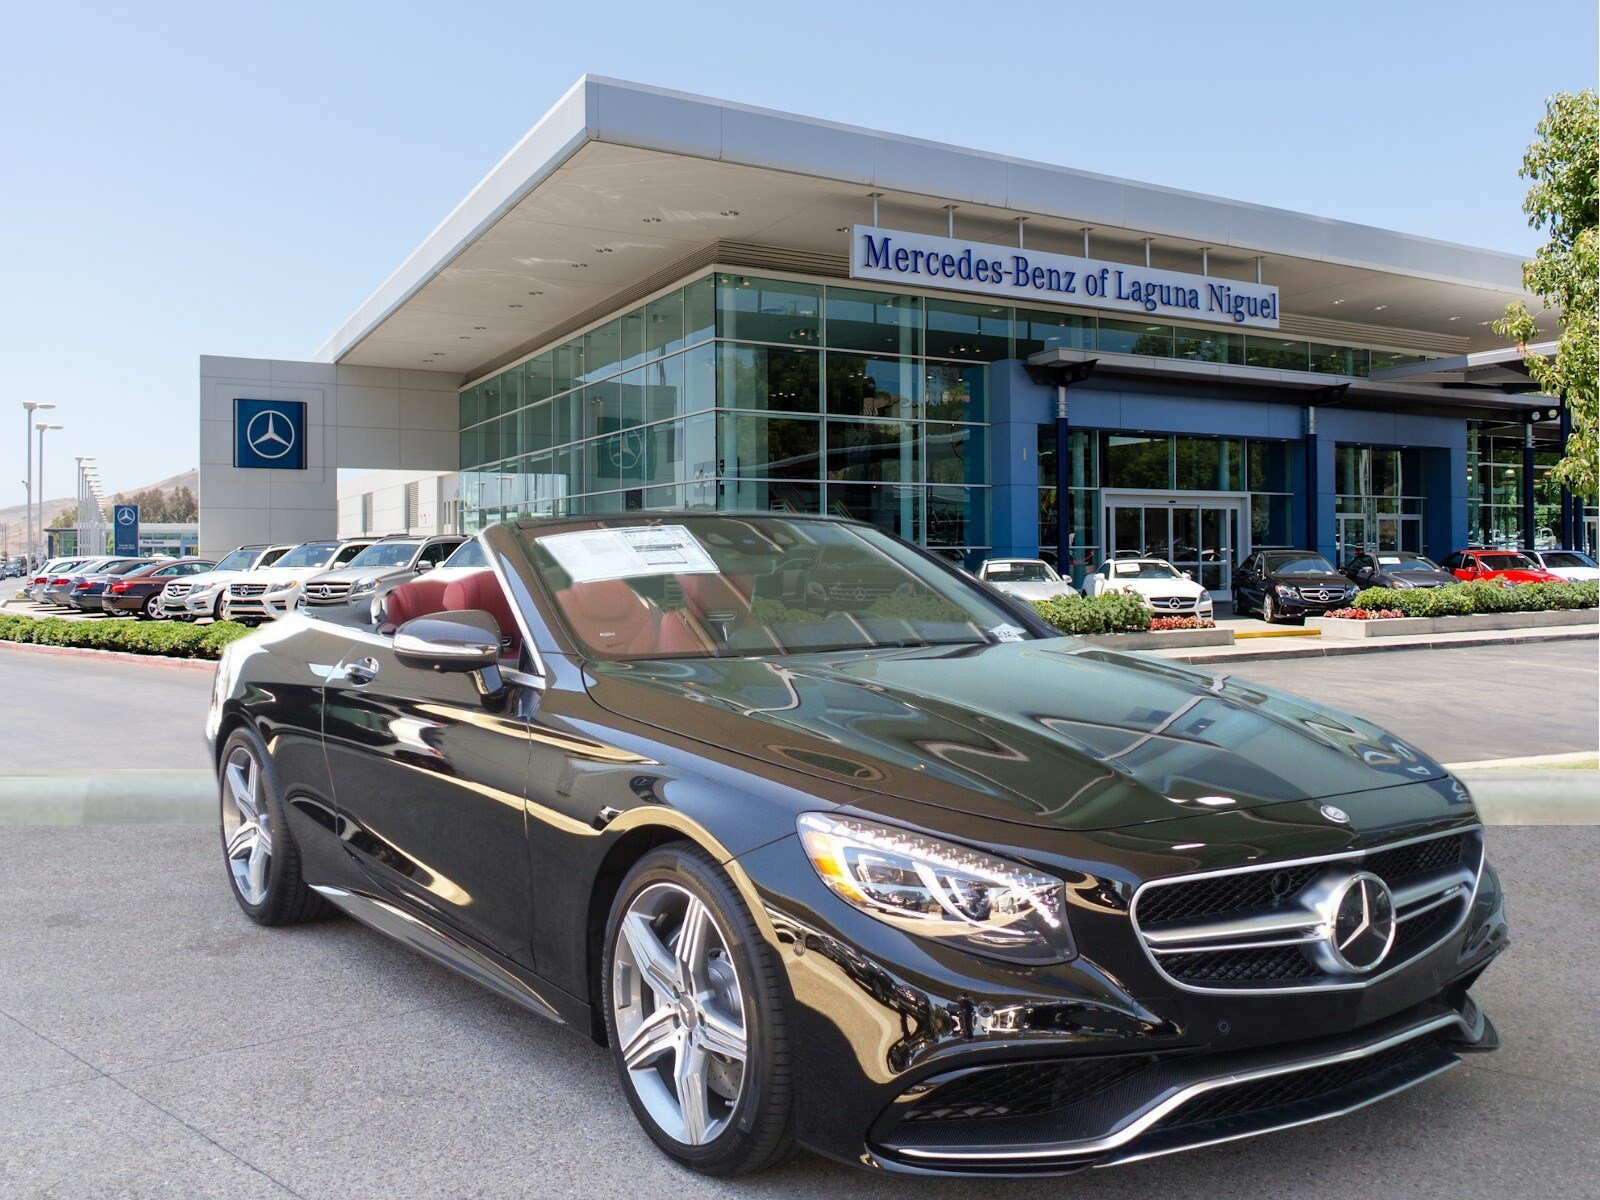 New 2017 mercedes benz s class amg s63 cabriolet in for Mercedes benz laguna niguel ca